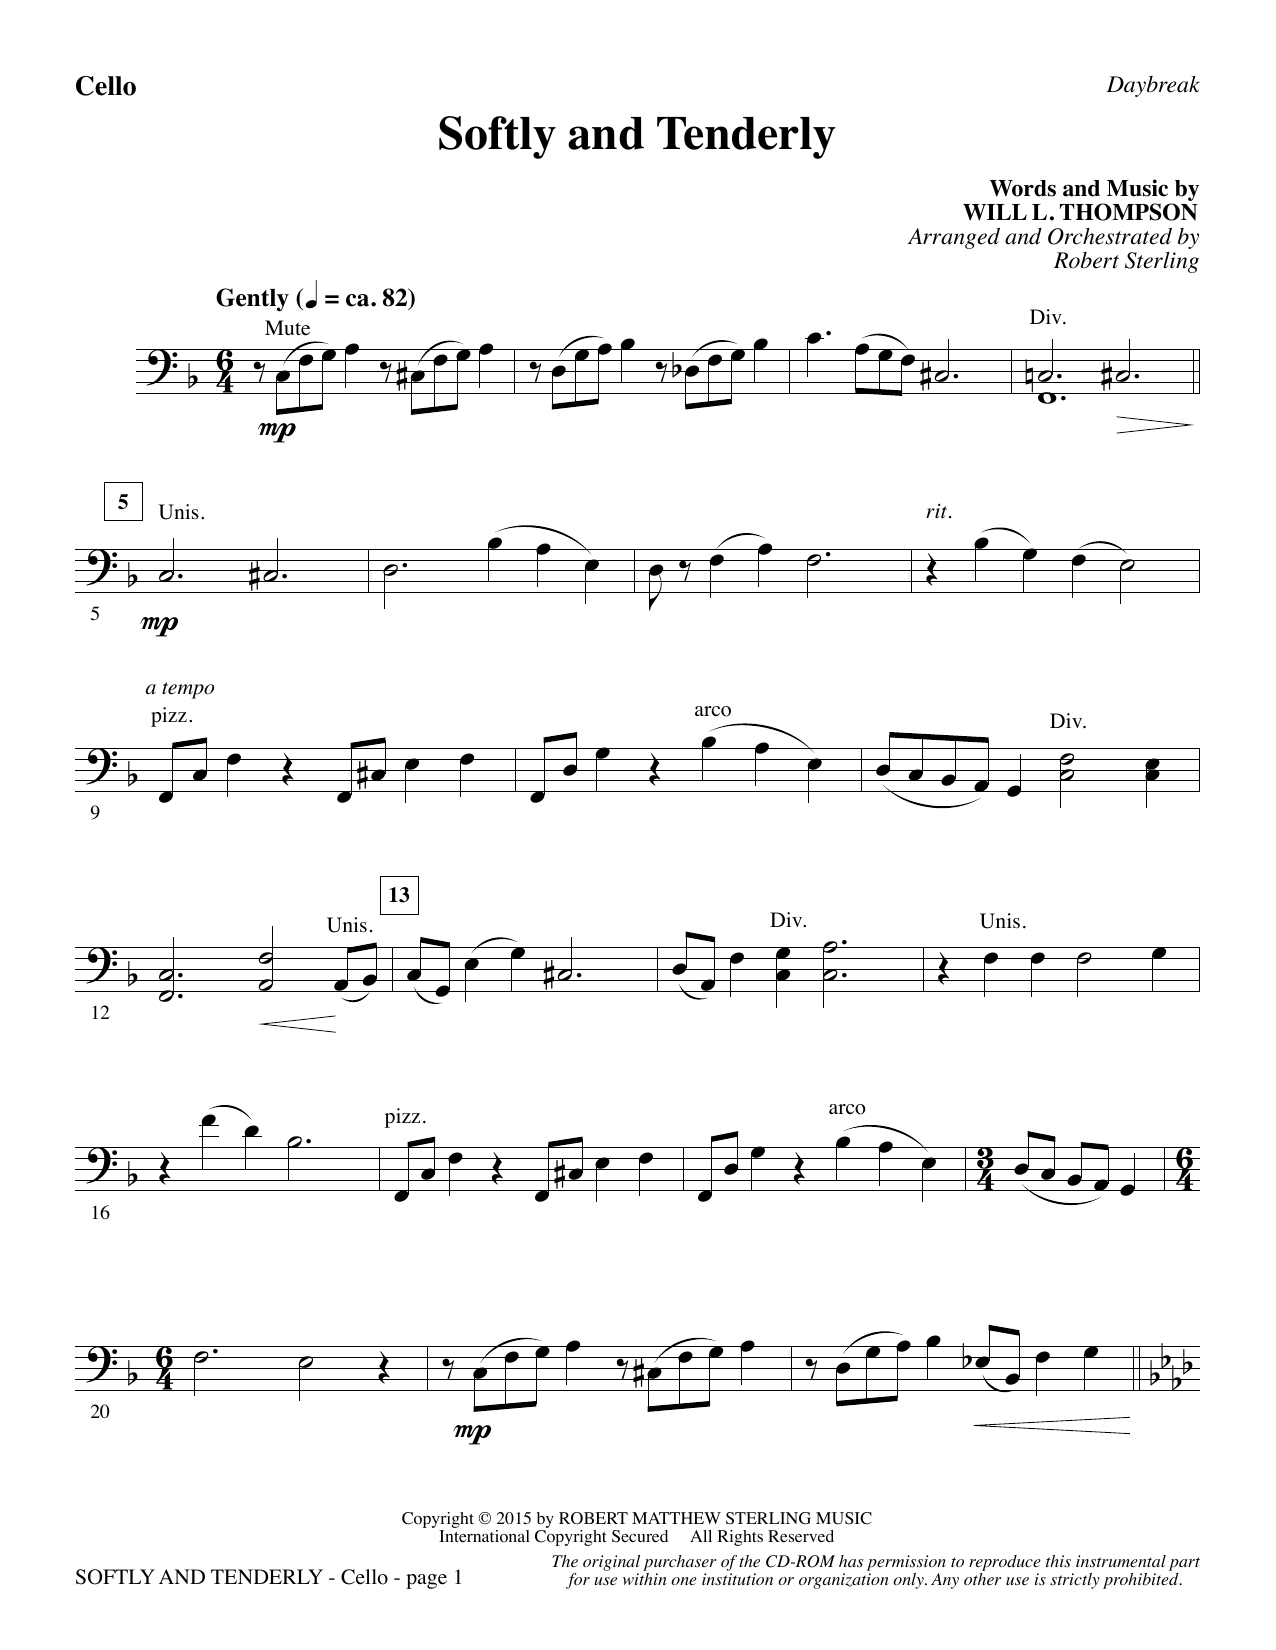 Softly and Tenderly - Cello Sheet Music